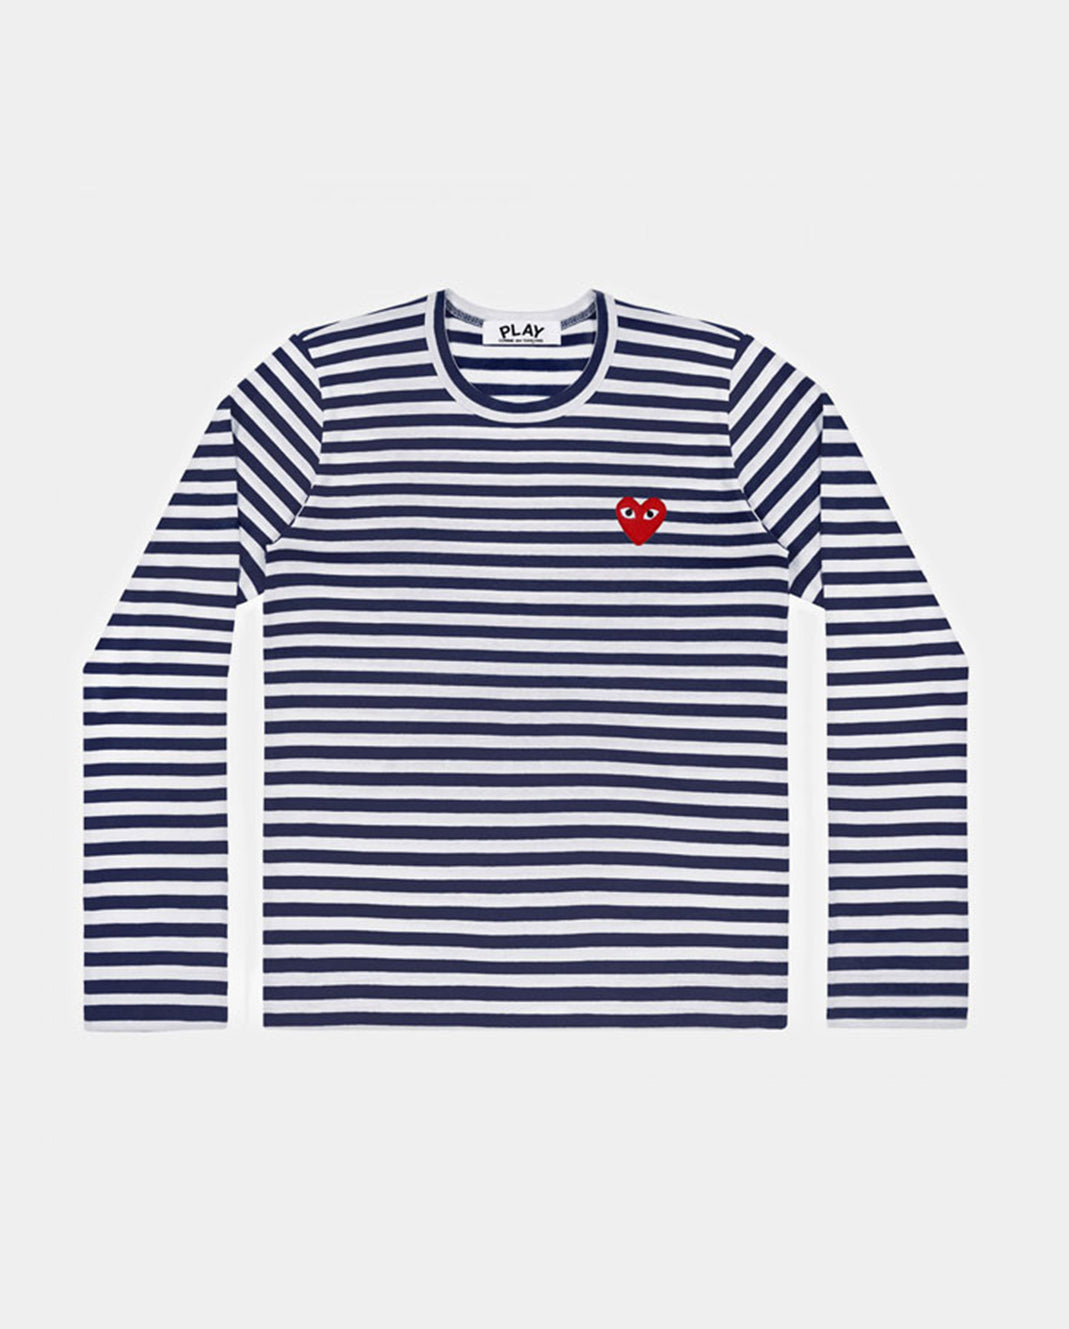 T-SHIRT T010 LS STRIPE RED HEART PATCH / NAVY